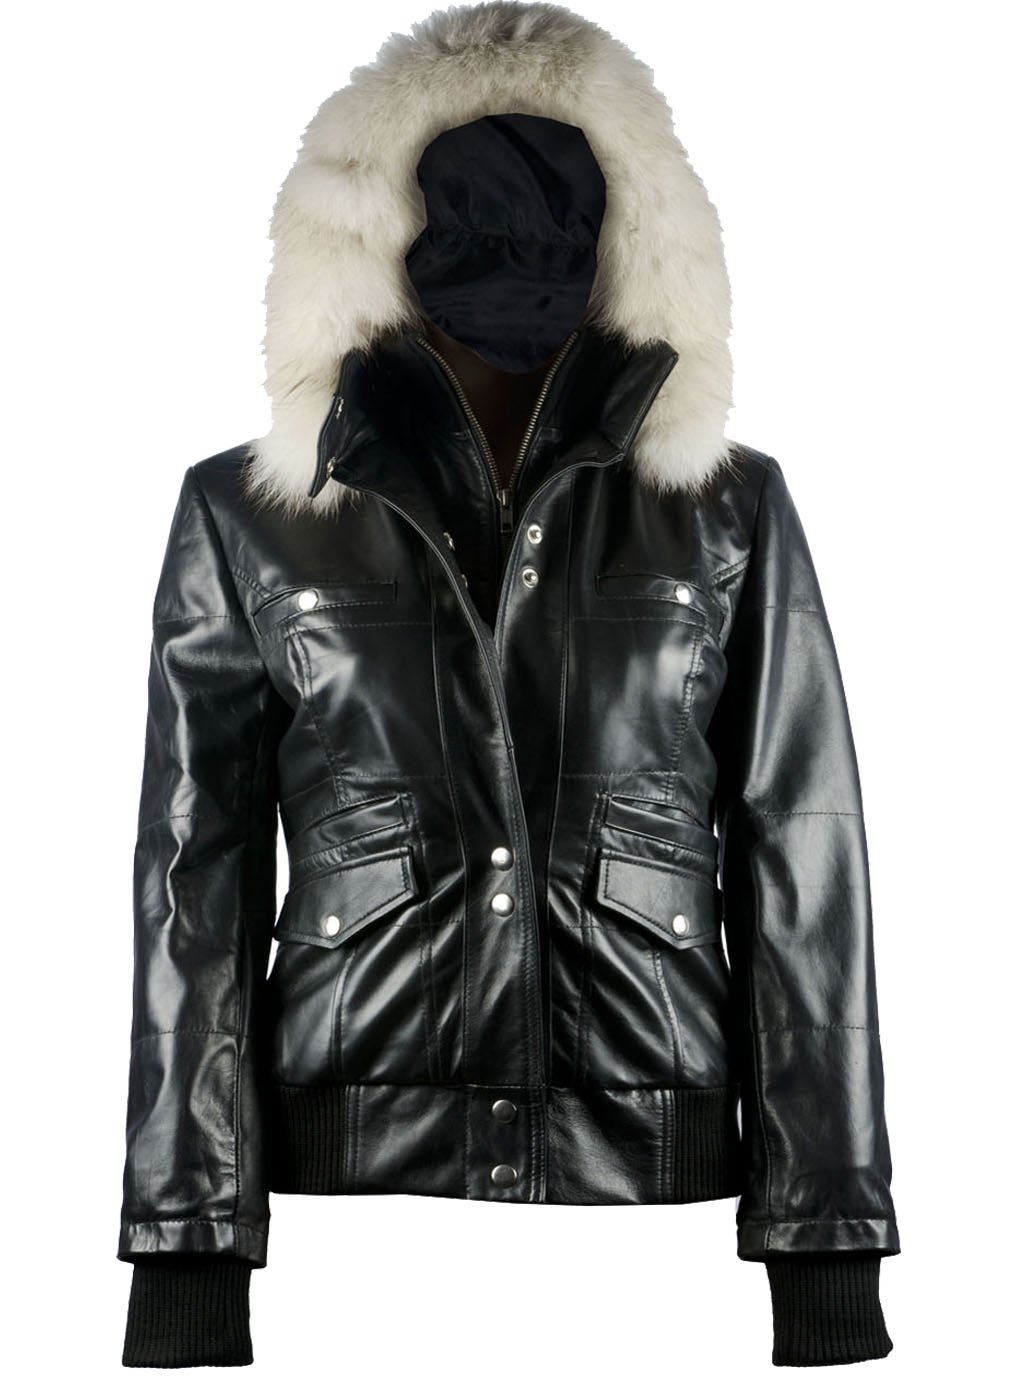 FactoryExtreme Arctic Freeze Womens Black Bomber Leather Jacket with Hoodie, X-Small, Black